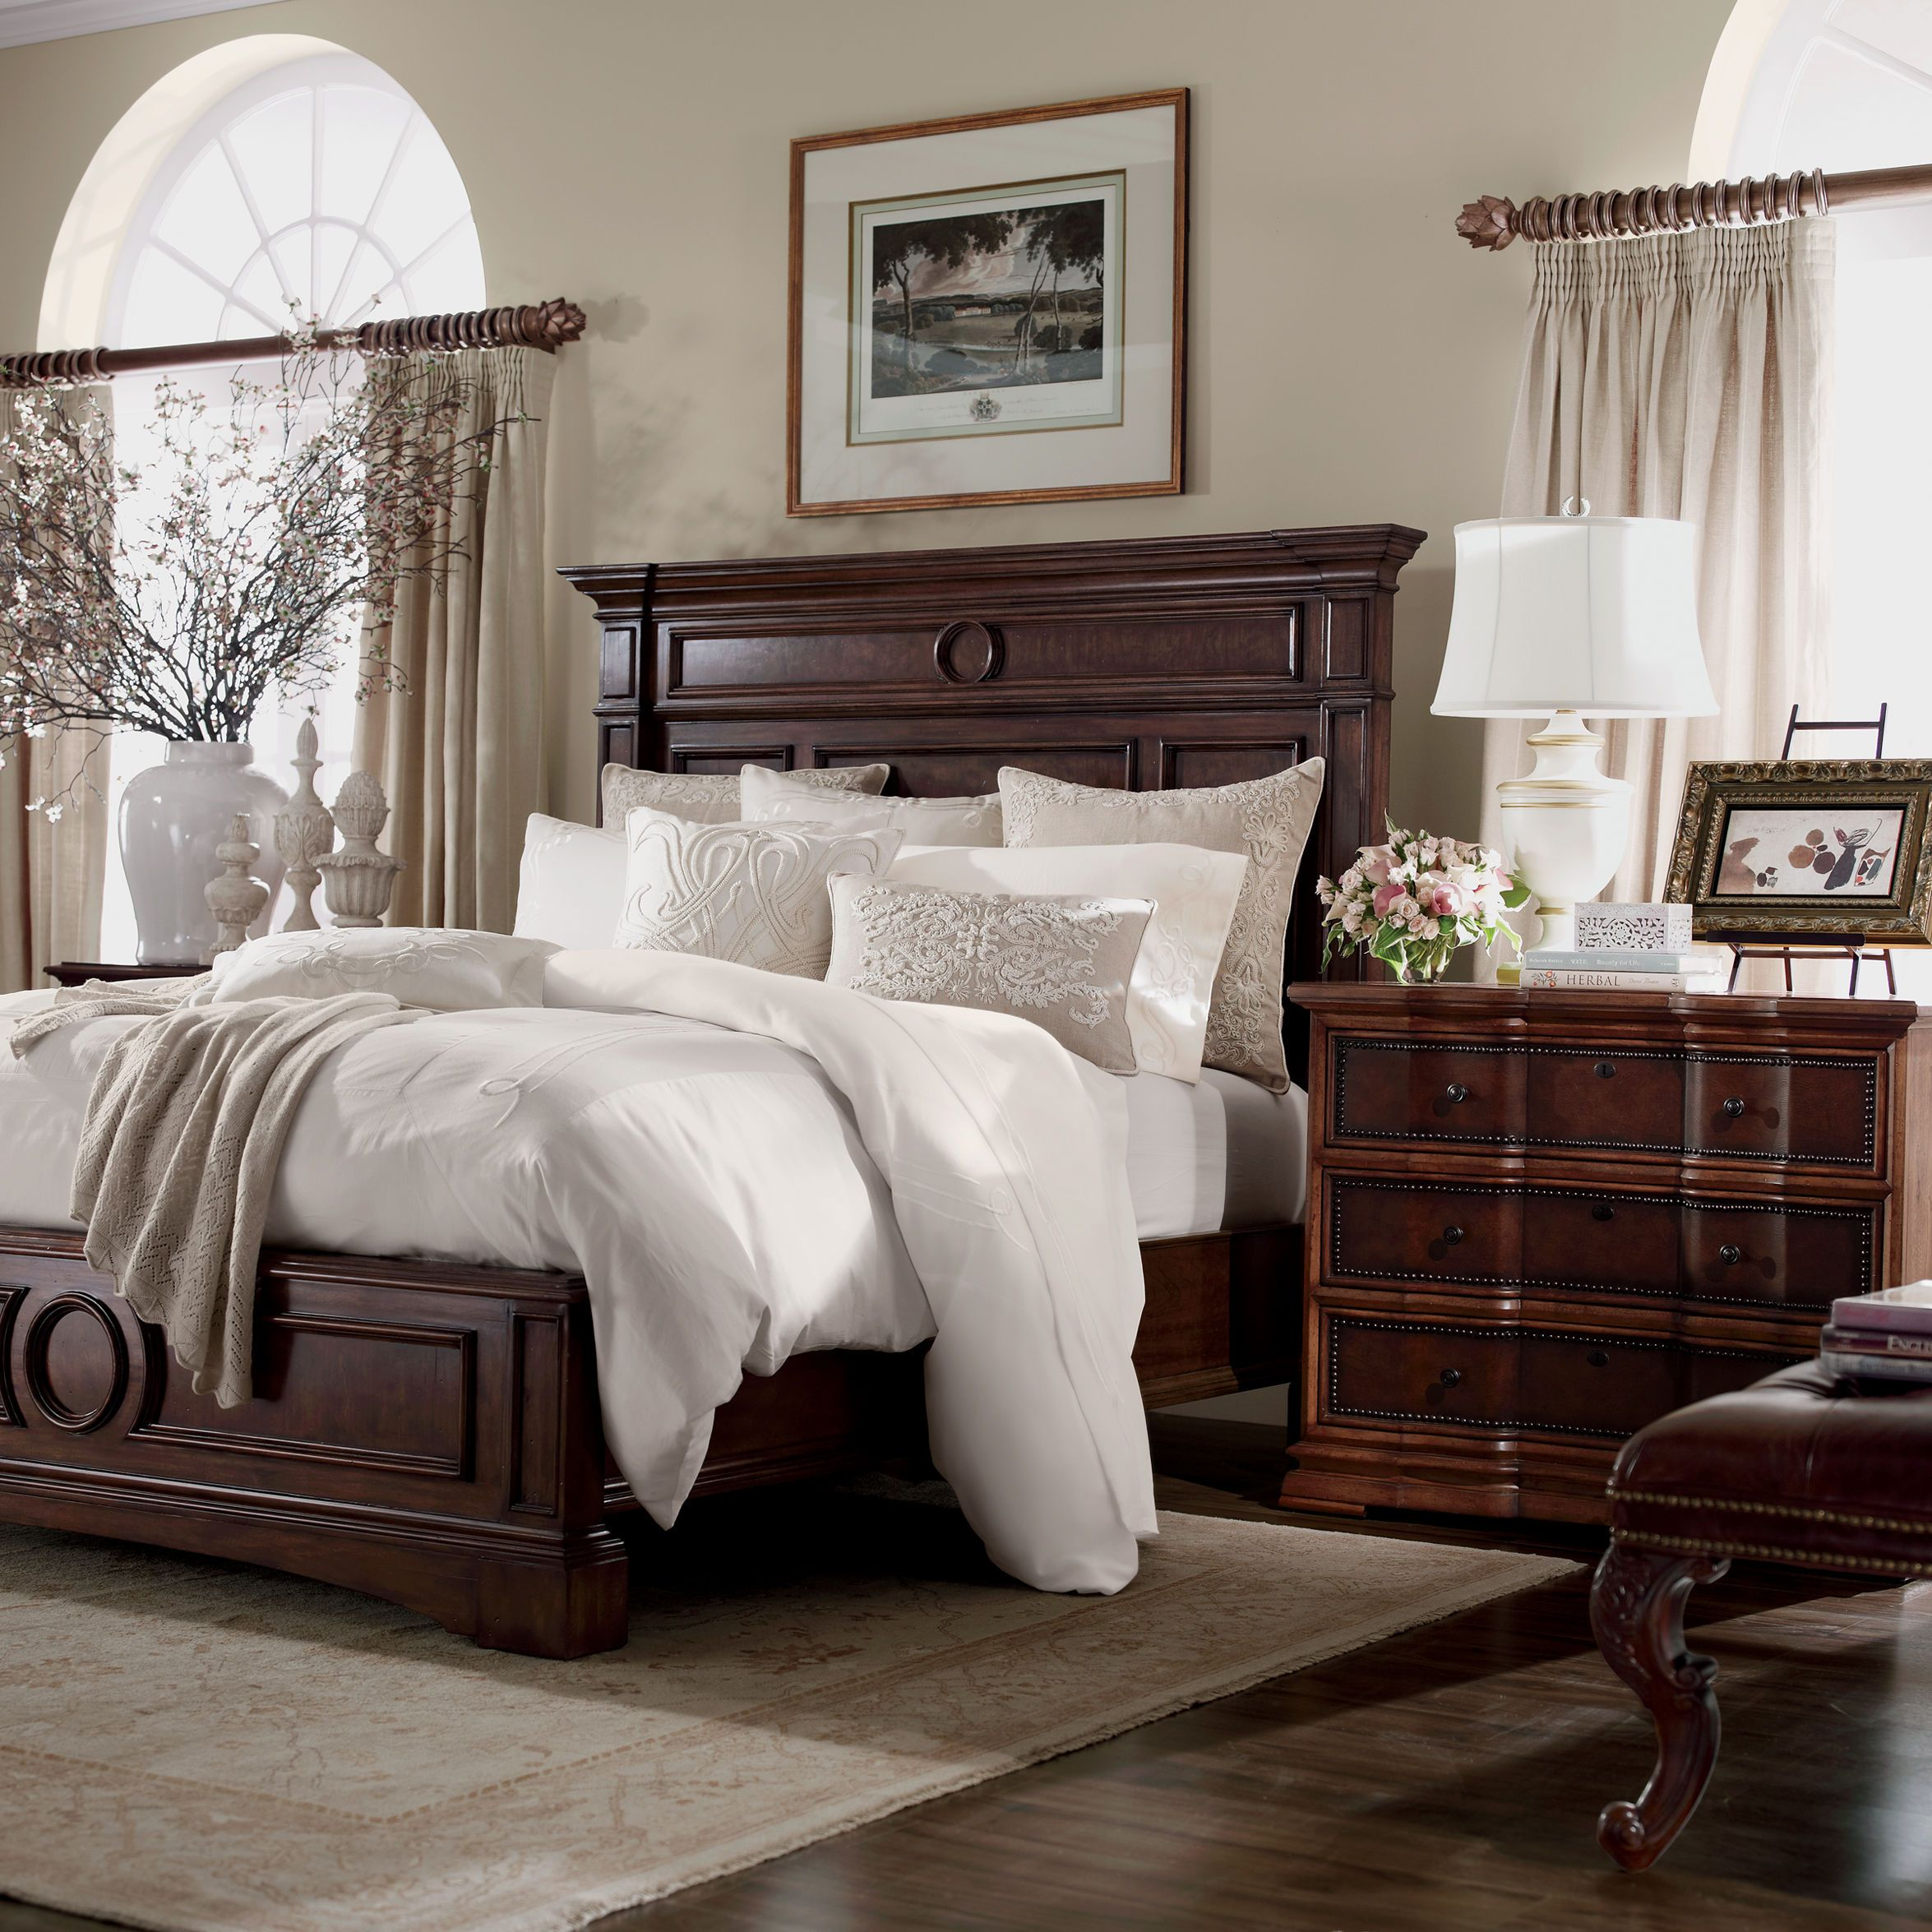 warwick bed ethan allen us there s no place like home 15226 | 2ae4ba1148dead2d2372ccc95fe394b6